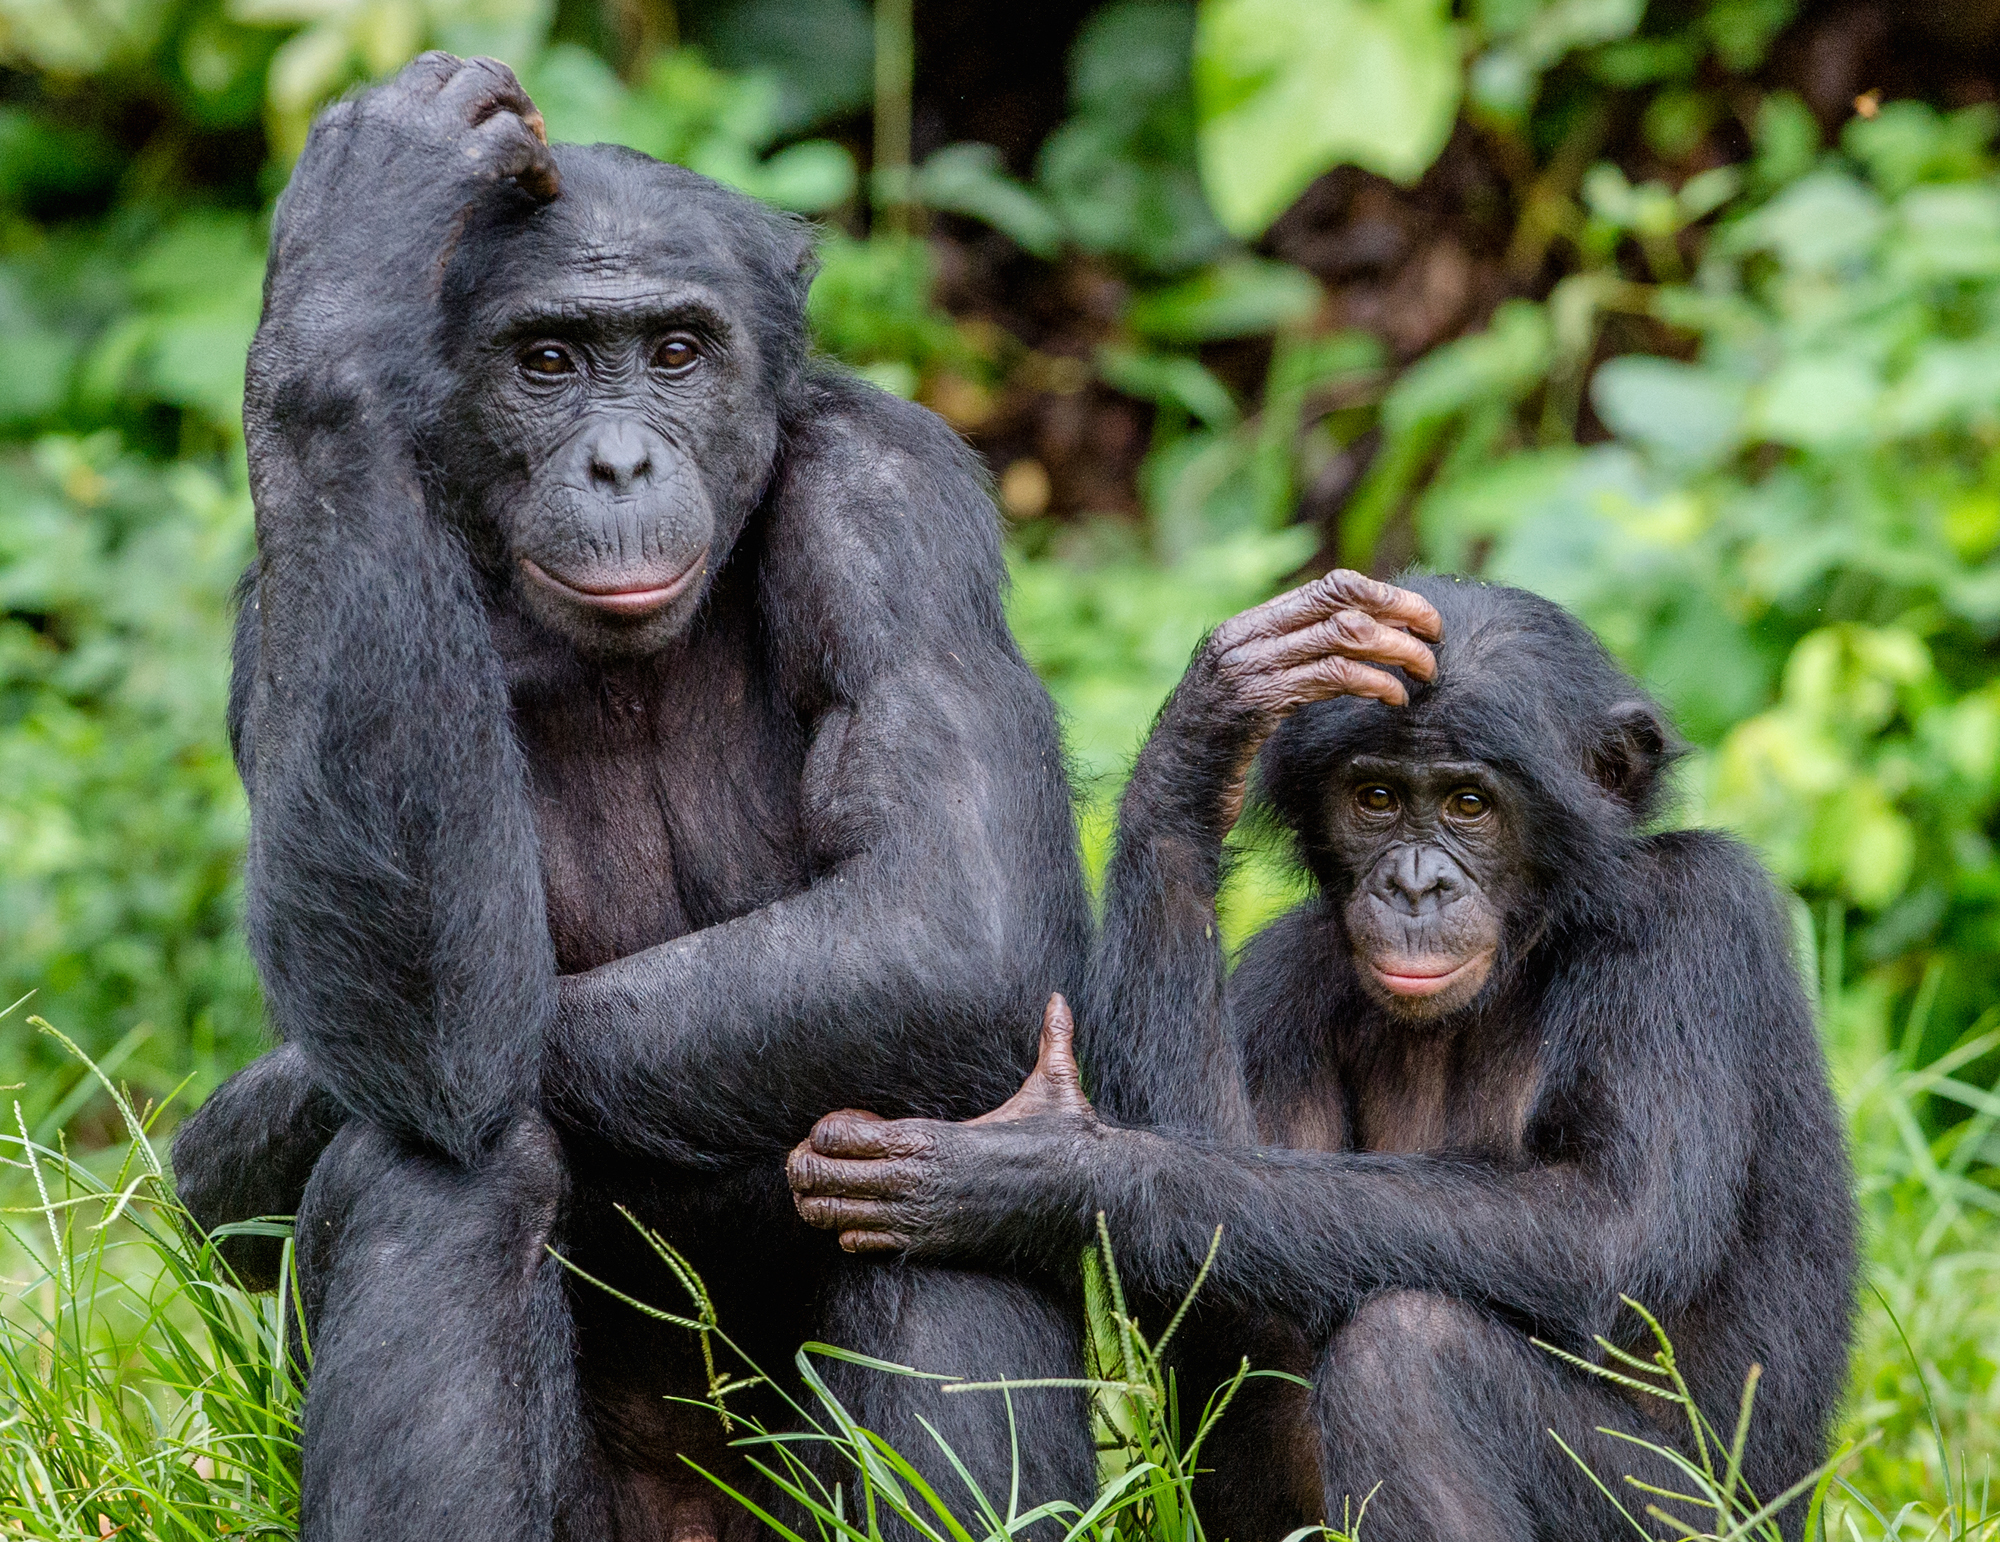 Great ape gestures: Studying the behavior of bonobos in Congo can offer insight into human evolution. | GETTY IMAGES